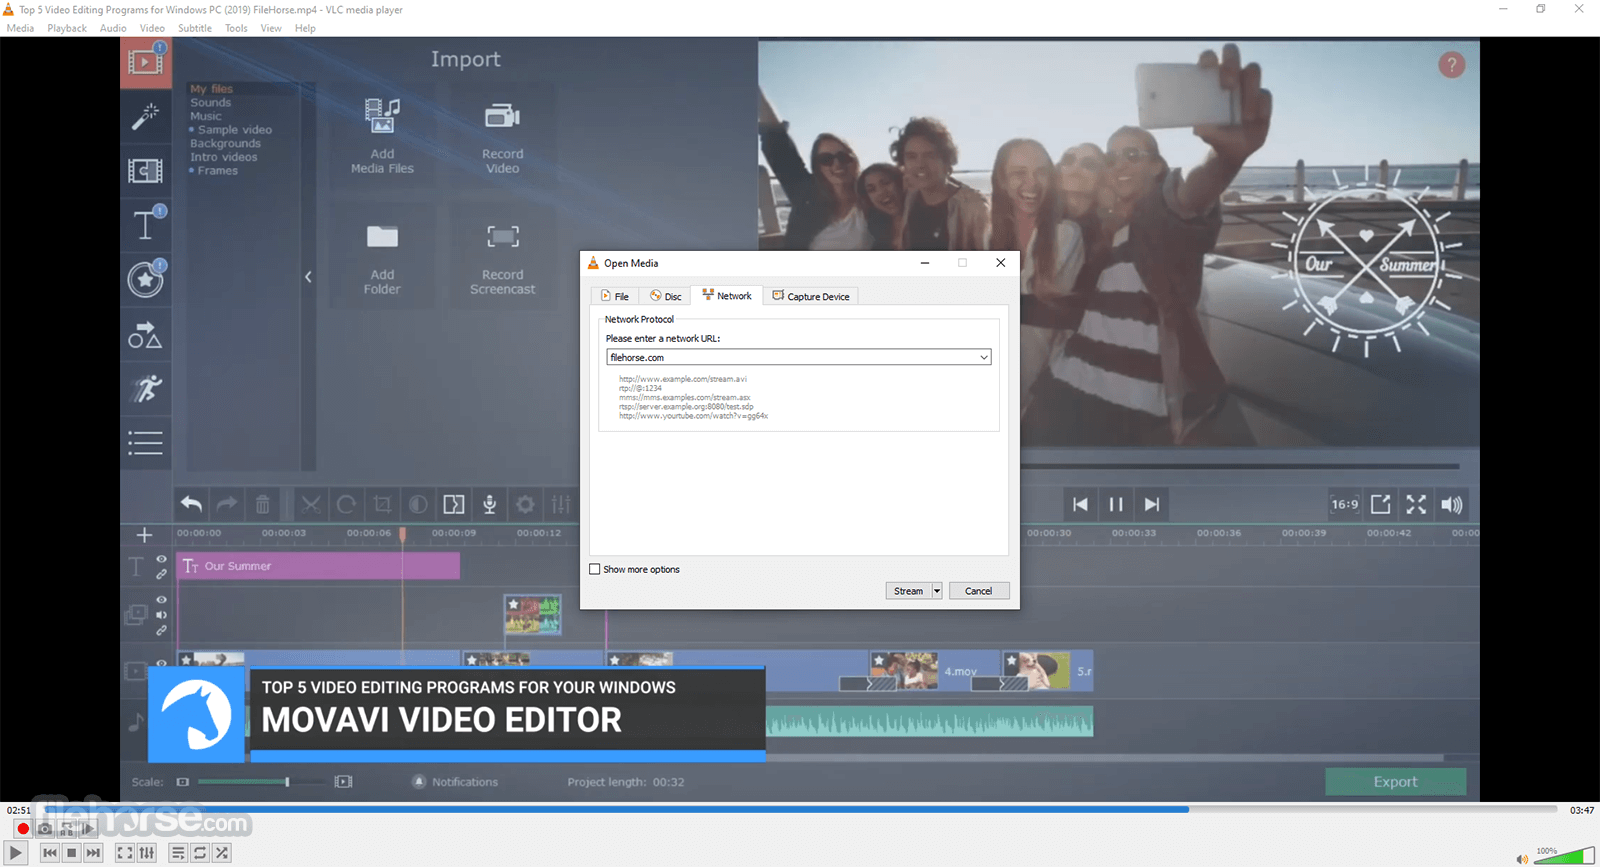 VLC Media Player 2.2.2 (32-bit) Screenshot 3